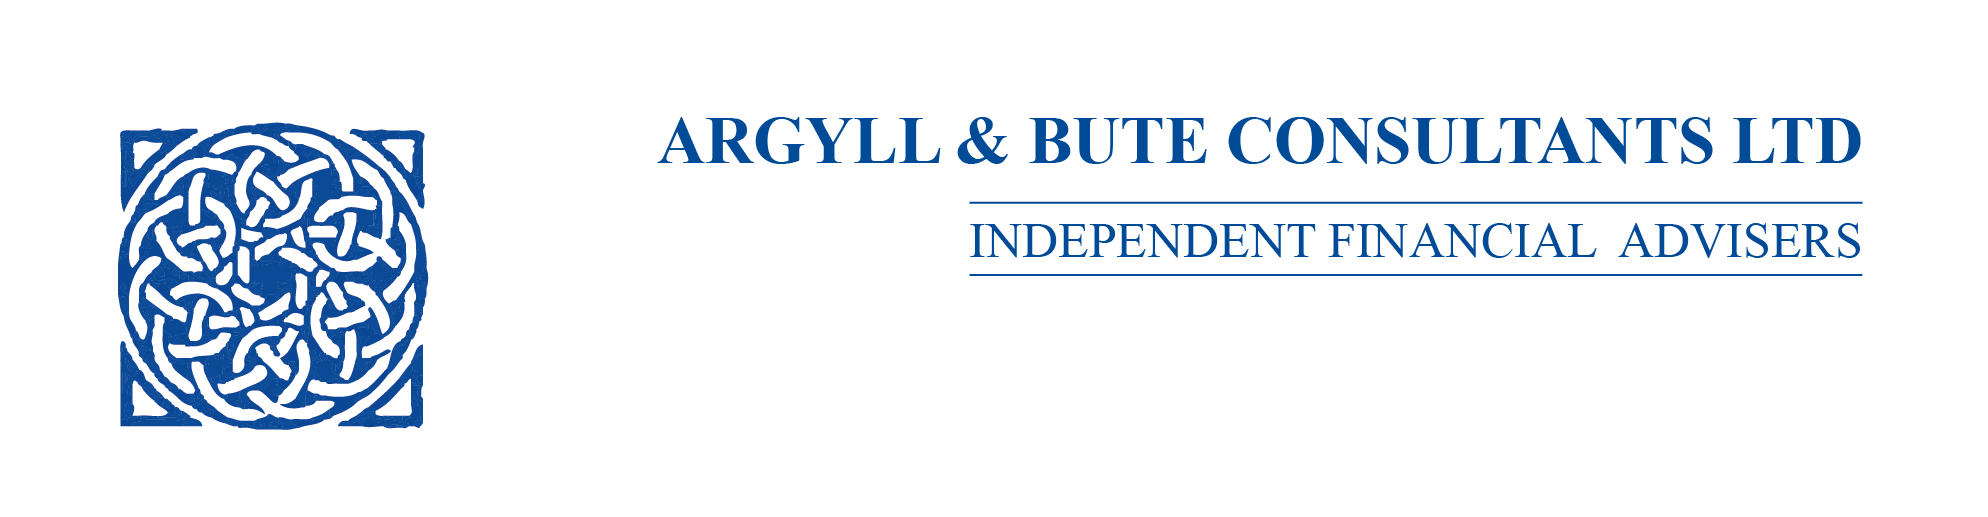 Argyll & Bute Consultants Limited Logo